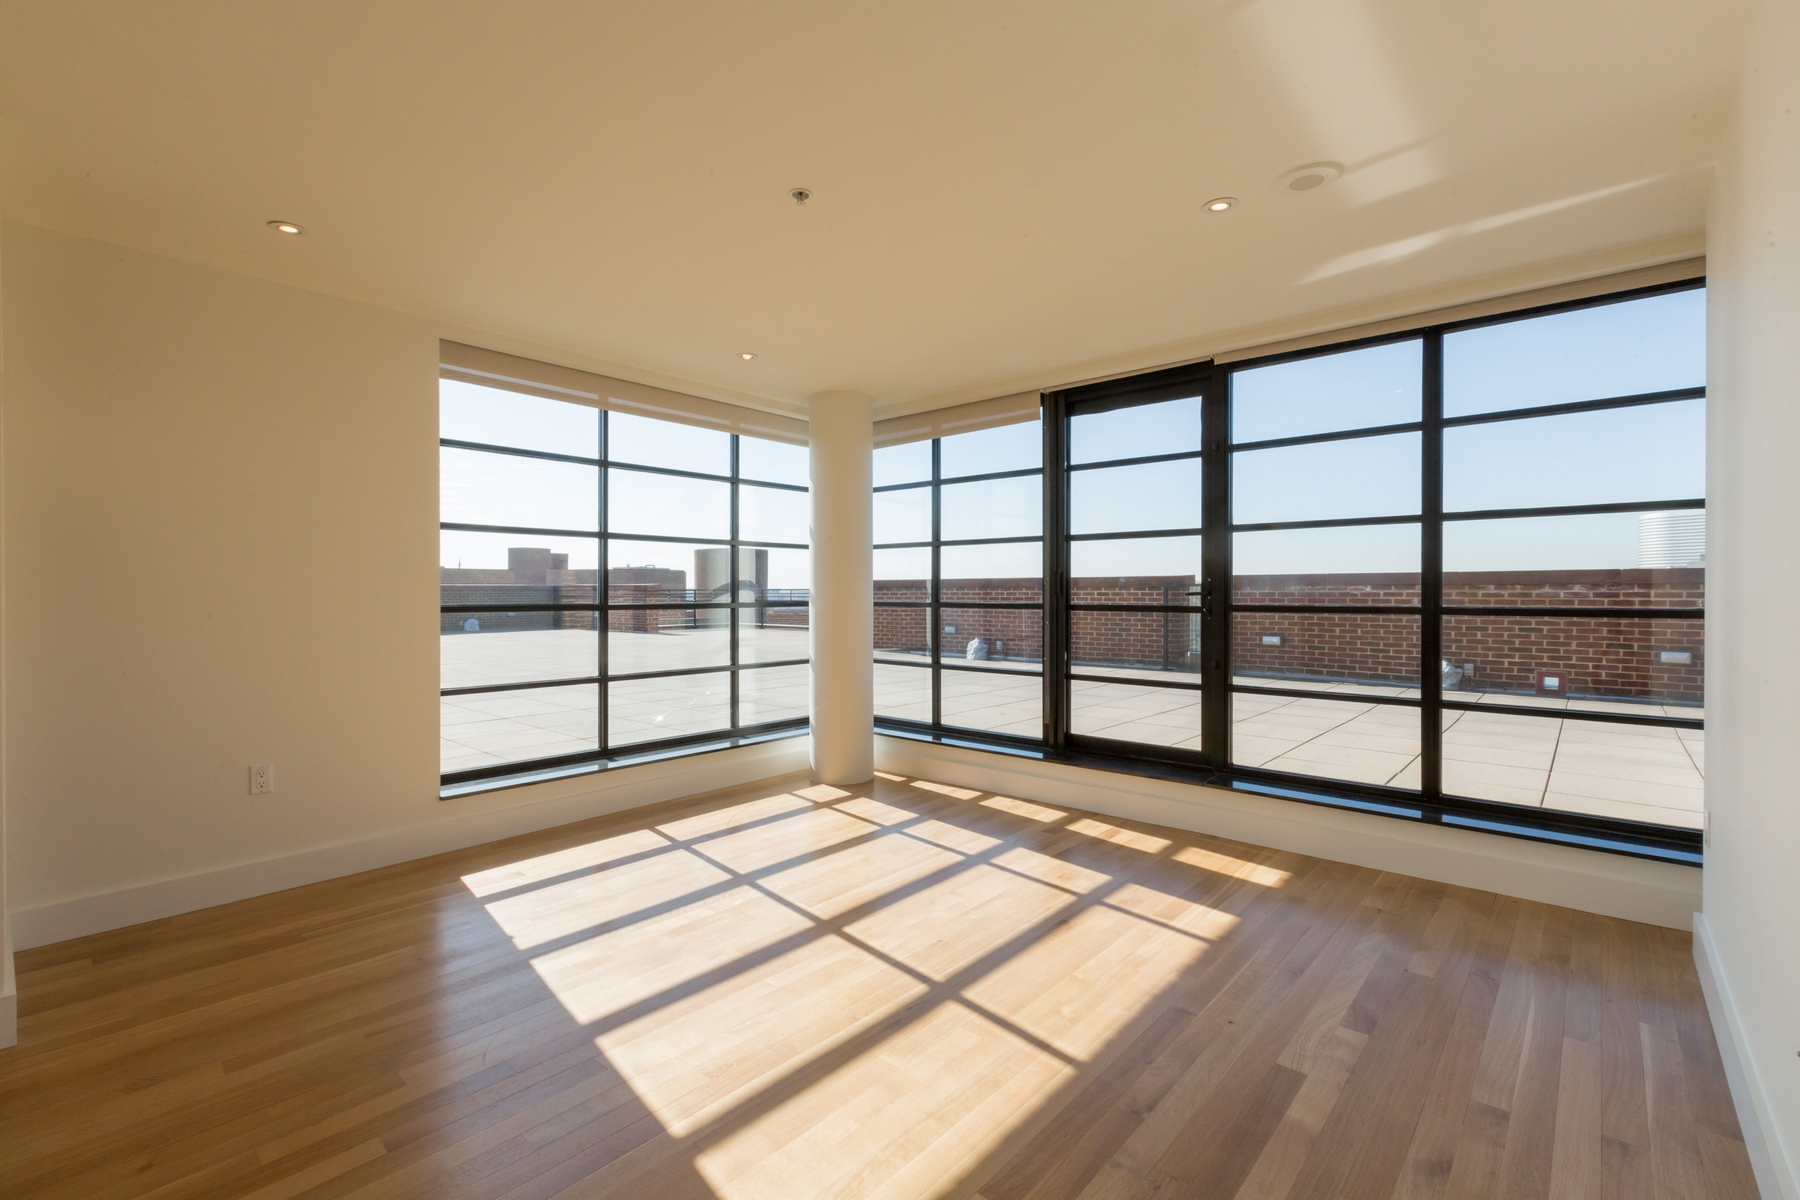 Additional photo for property listing at Georgetown 3303 Water Street NW #8F Washington, コロンビア特別区 20007 アメリカ合衆国